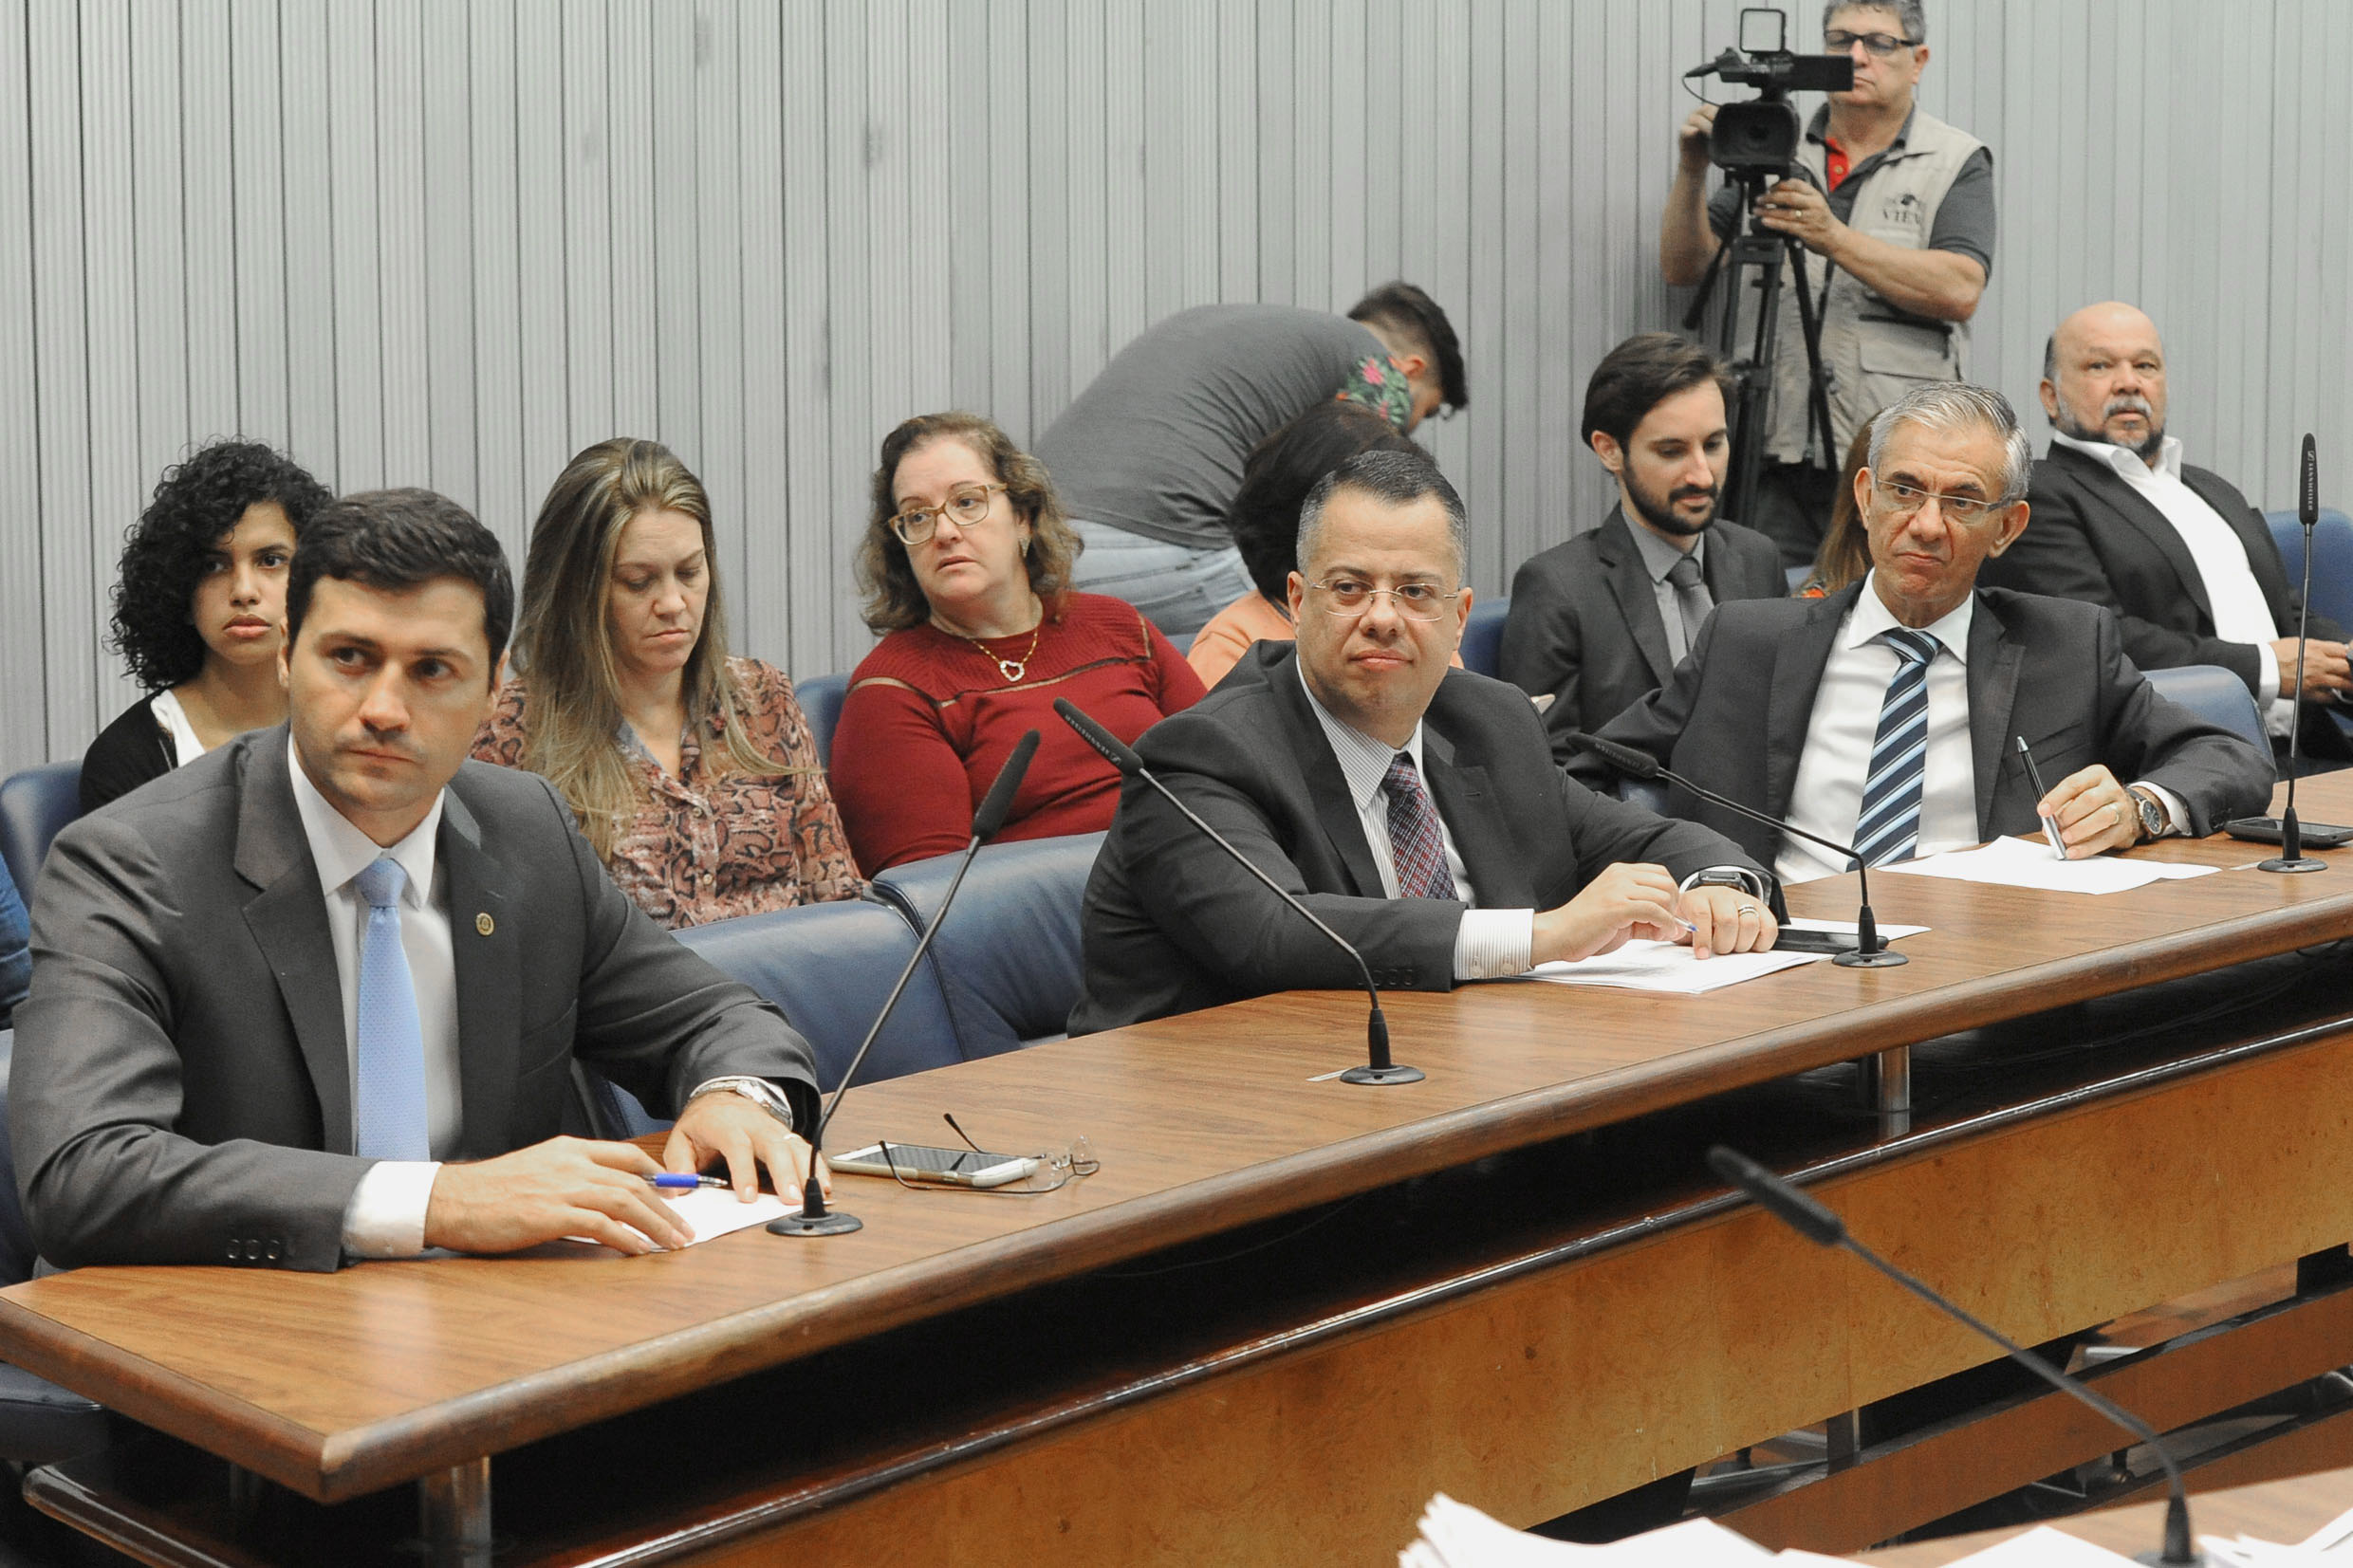 Parlamentares na CPI<a style='float:right' href='https://www3.al.sp.gov.br/repositorio/noticia/N-06-2018/fg224625.jpg' target=_blank><img src='/_img/material-file-download-white.png' width='14px' alt='Clique para baixar a imagem'></a>